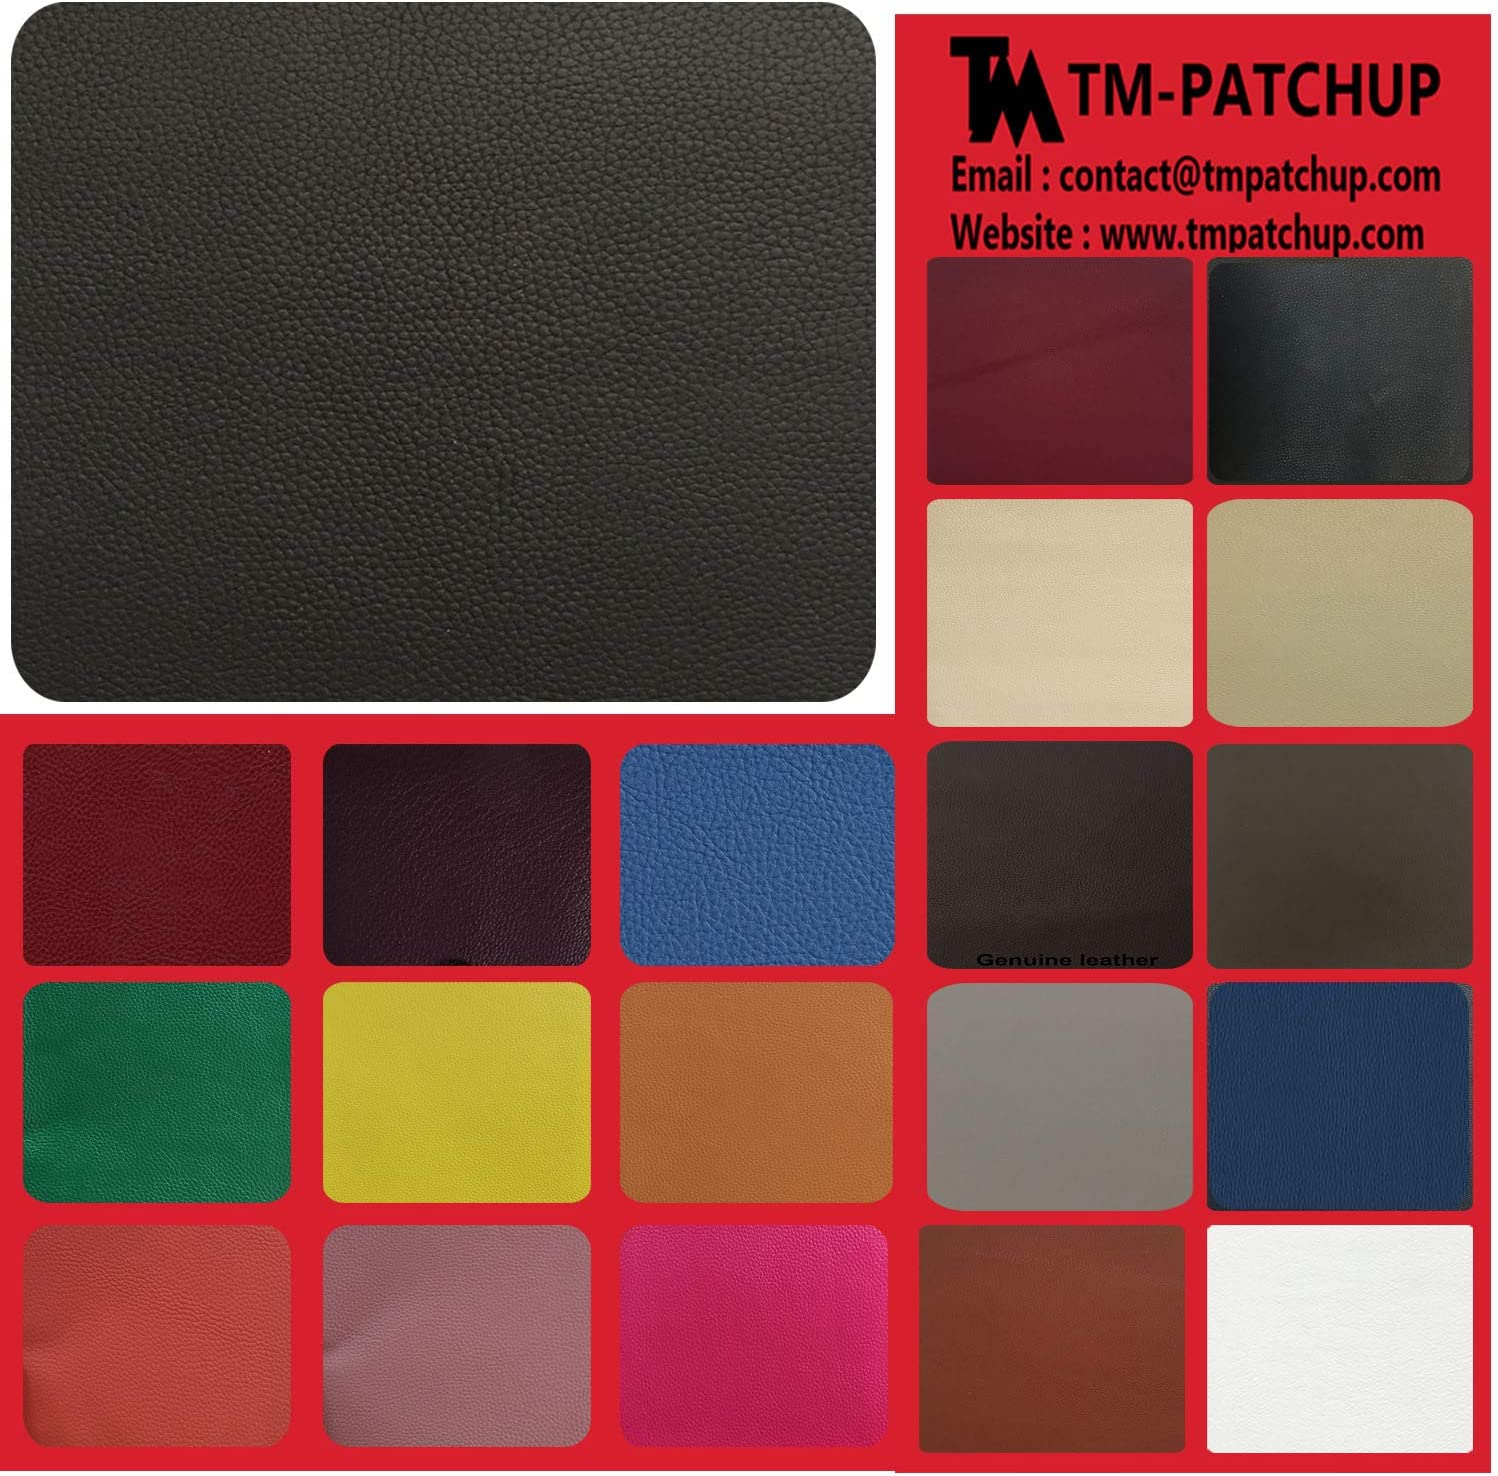 TMgroup, Leather Patches for Furniture, Genuine Leather Repair Patch kit, Peel and Stick for Couch, Sofas, car Seats, Hand Bags,Furniture, Size 6-inch x 3-inch (Black, Quantity : 1)